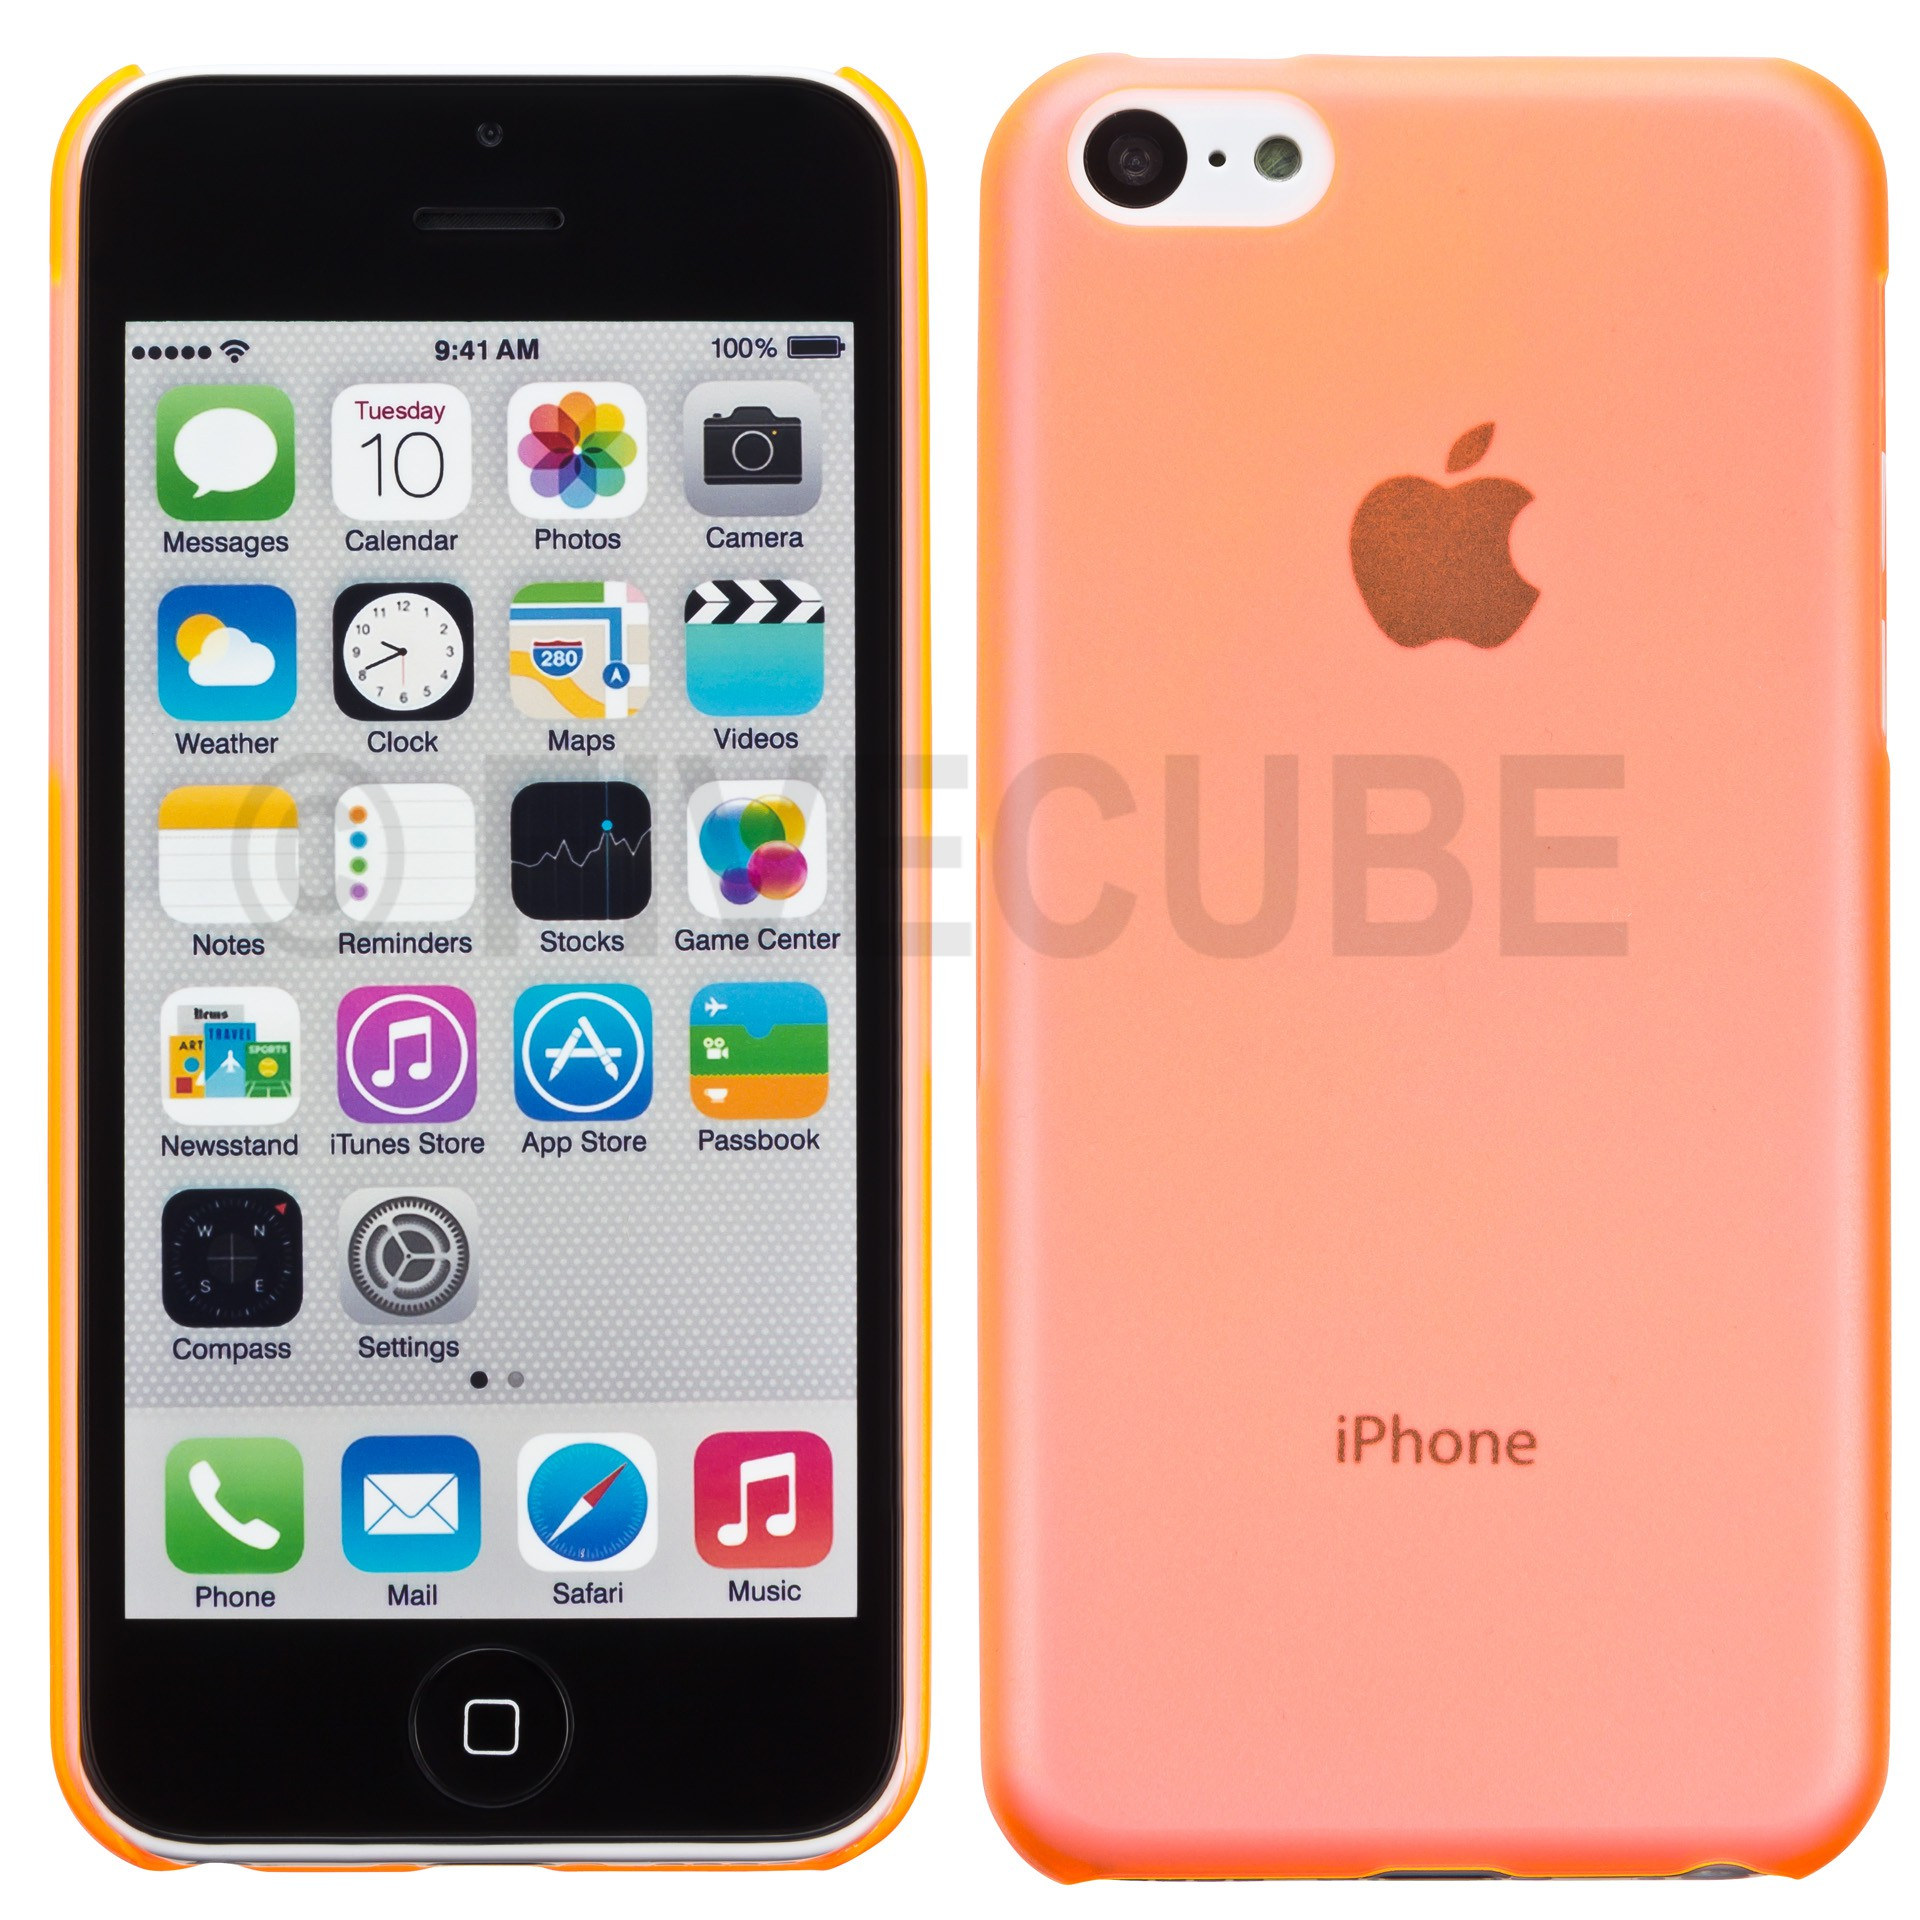 Yemota Pro Slimcase iPhone 5C - Orange